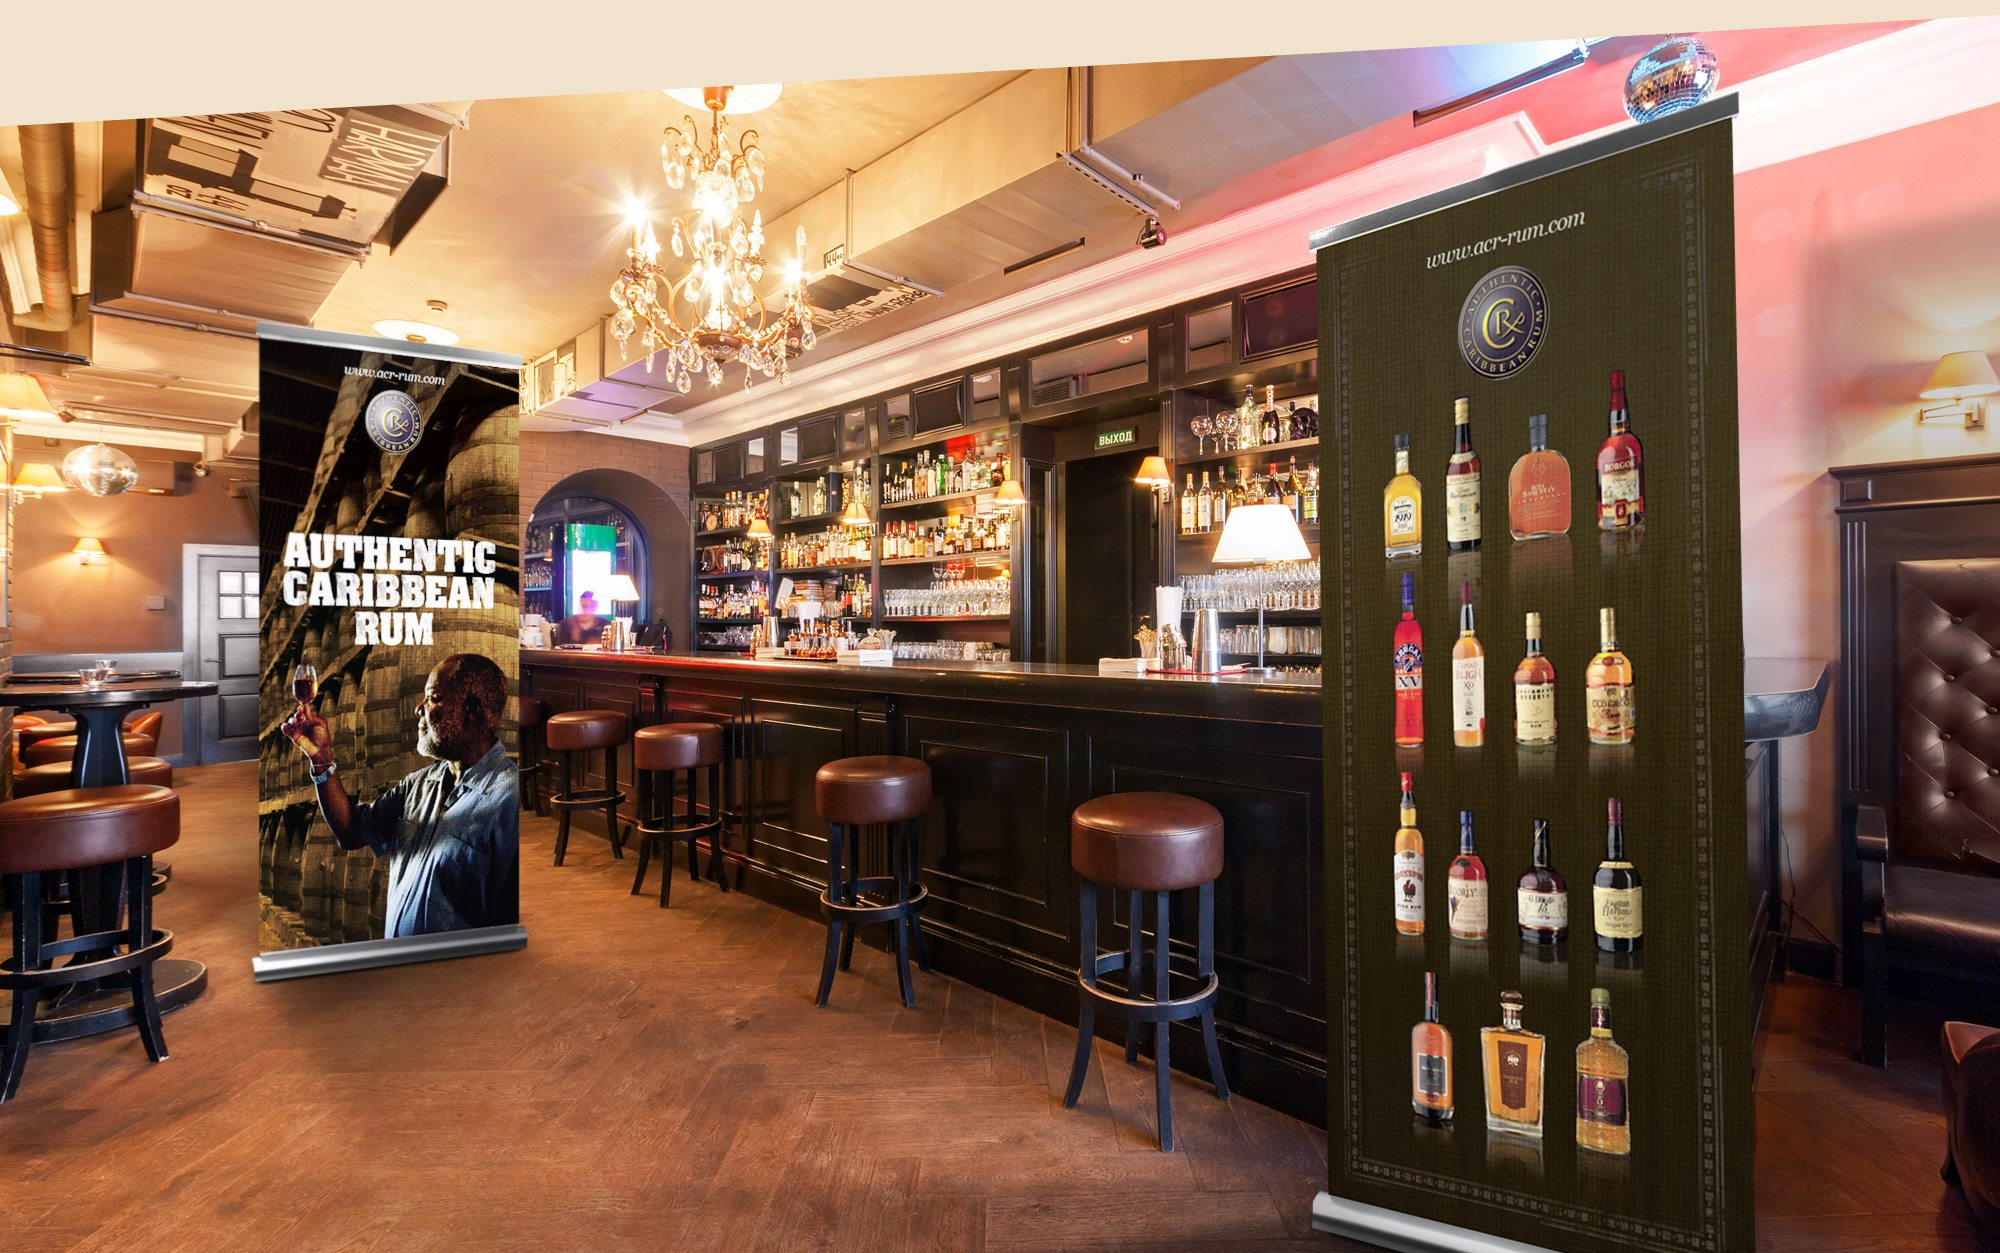 WIRSPA Rum Bar In-Store Banners Graphic Design